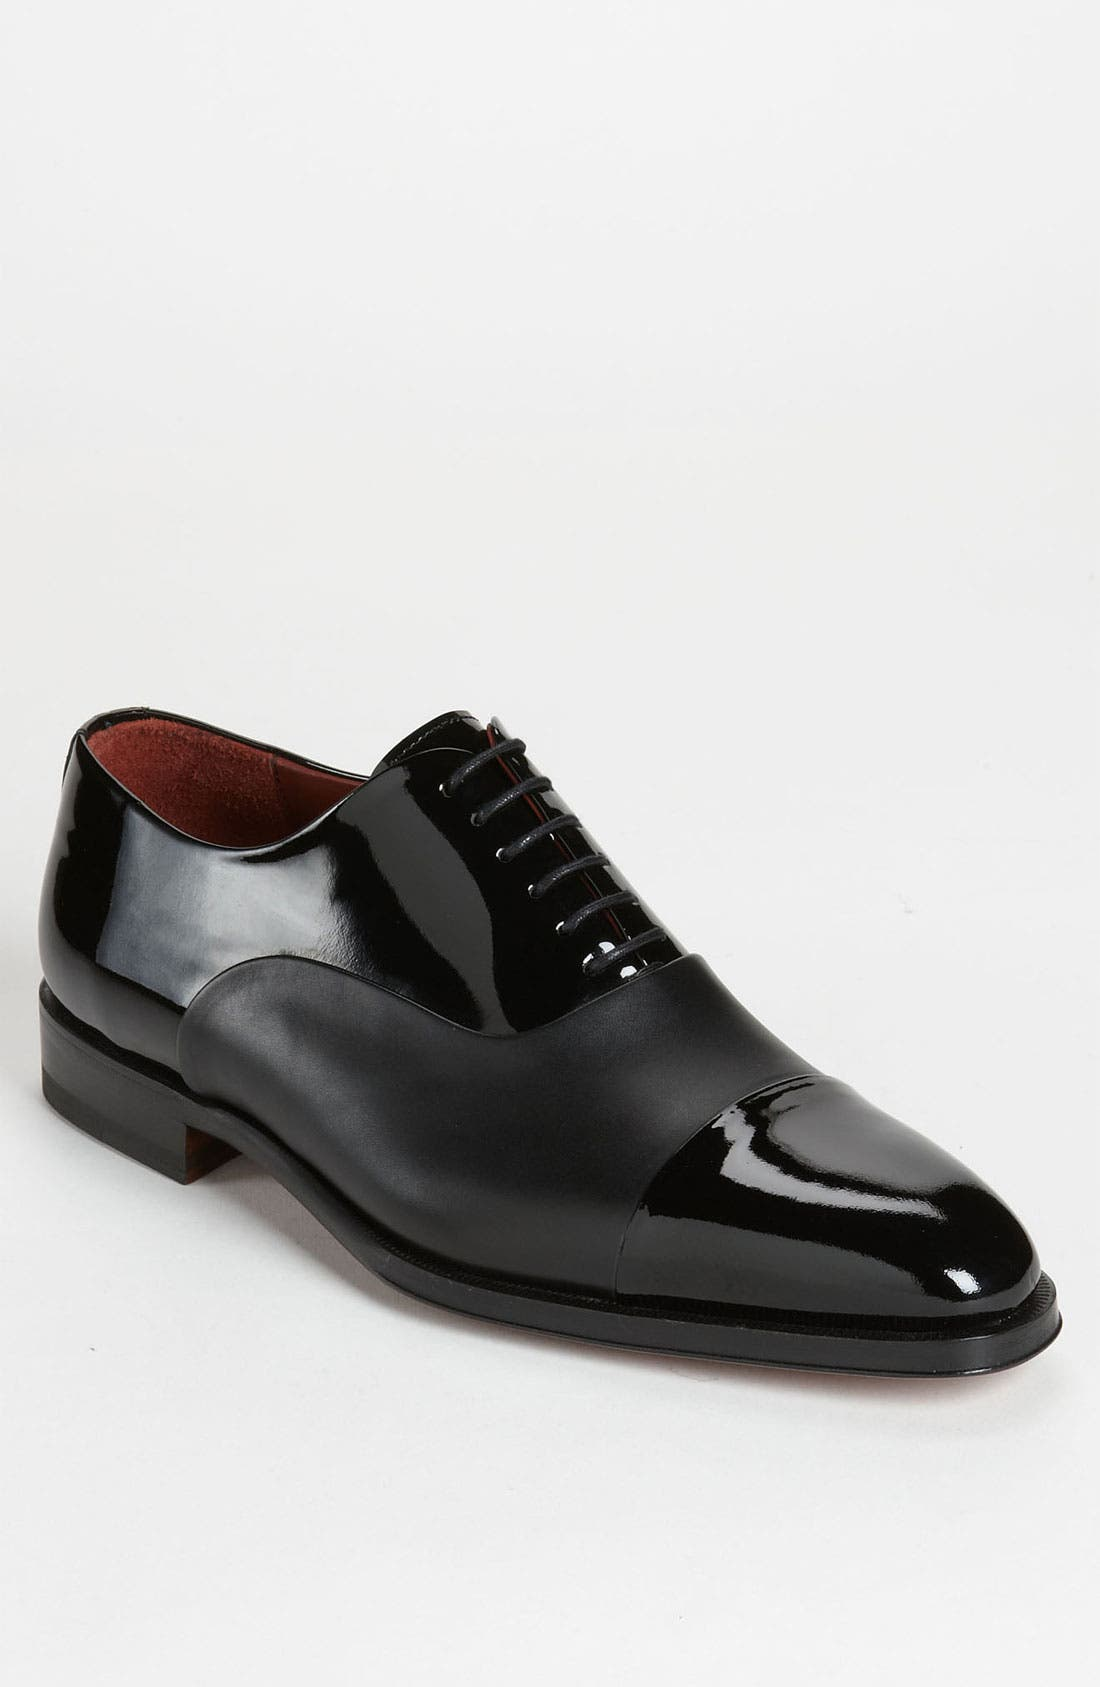 HYF Mens Genuine Leather Modern Tuxedo Shoes Lace Up Business Lined Oxfords Driving Shoes Business Shoes for Men